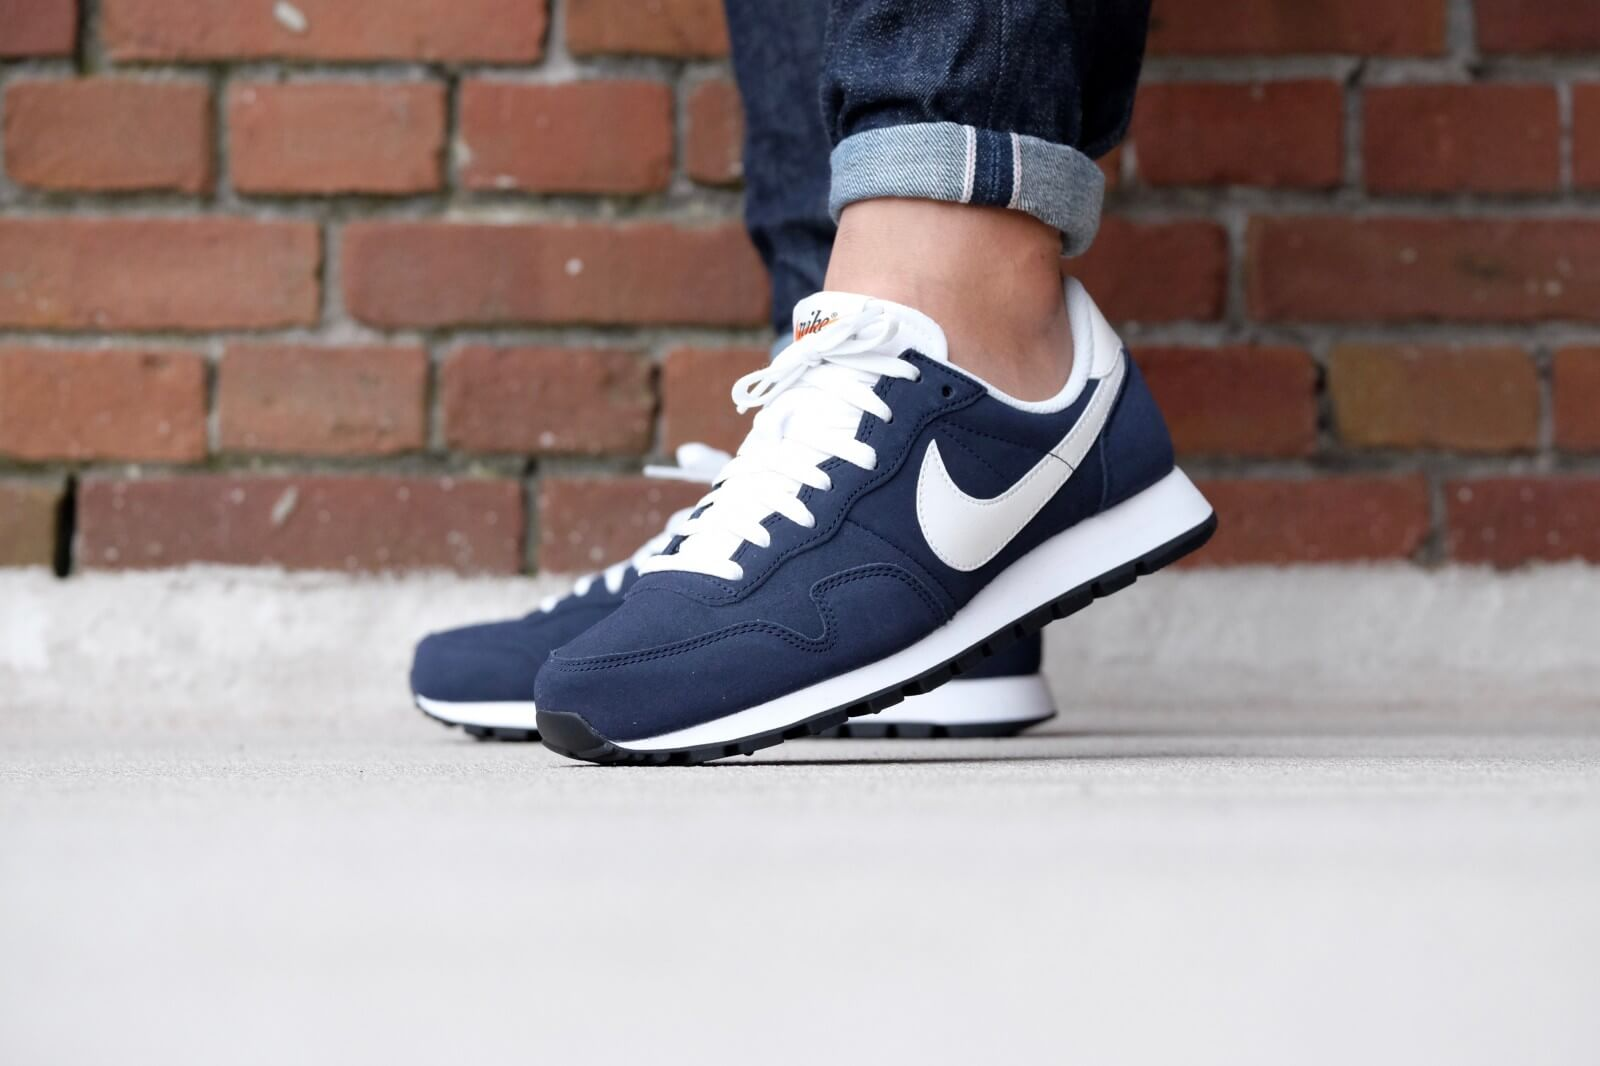 Volver a disparar Fanático coreano  Nike Air Pegasus 83 LTR Dark Obsidian/ Summit White-Black - 827922-401